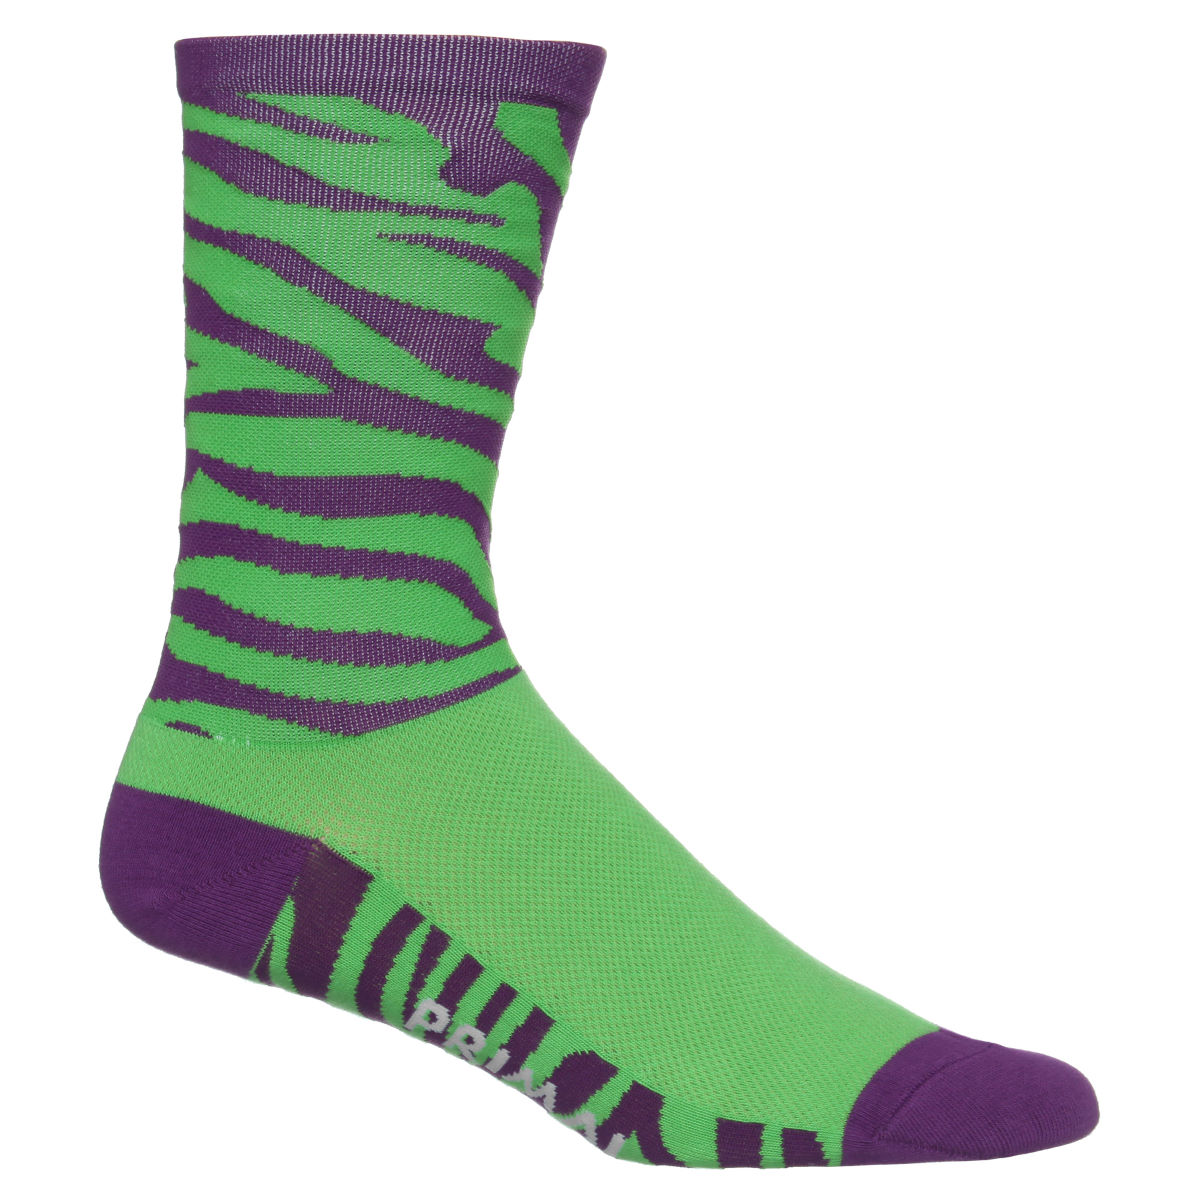 Chaussettes Primal Wild Ride - S/M Green/Purple | Chaussettes